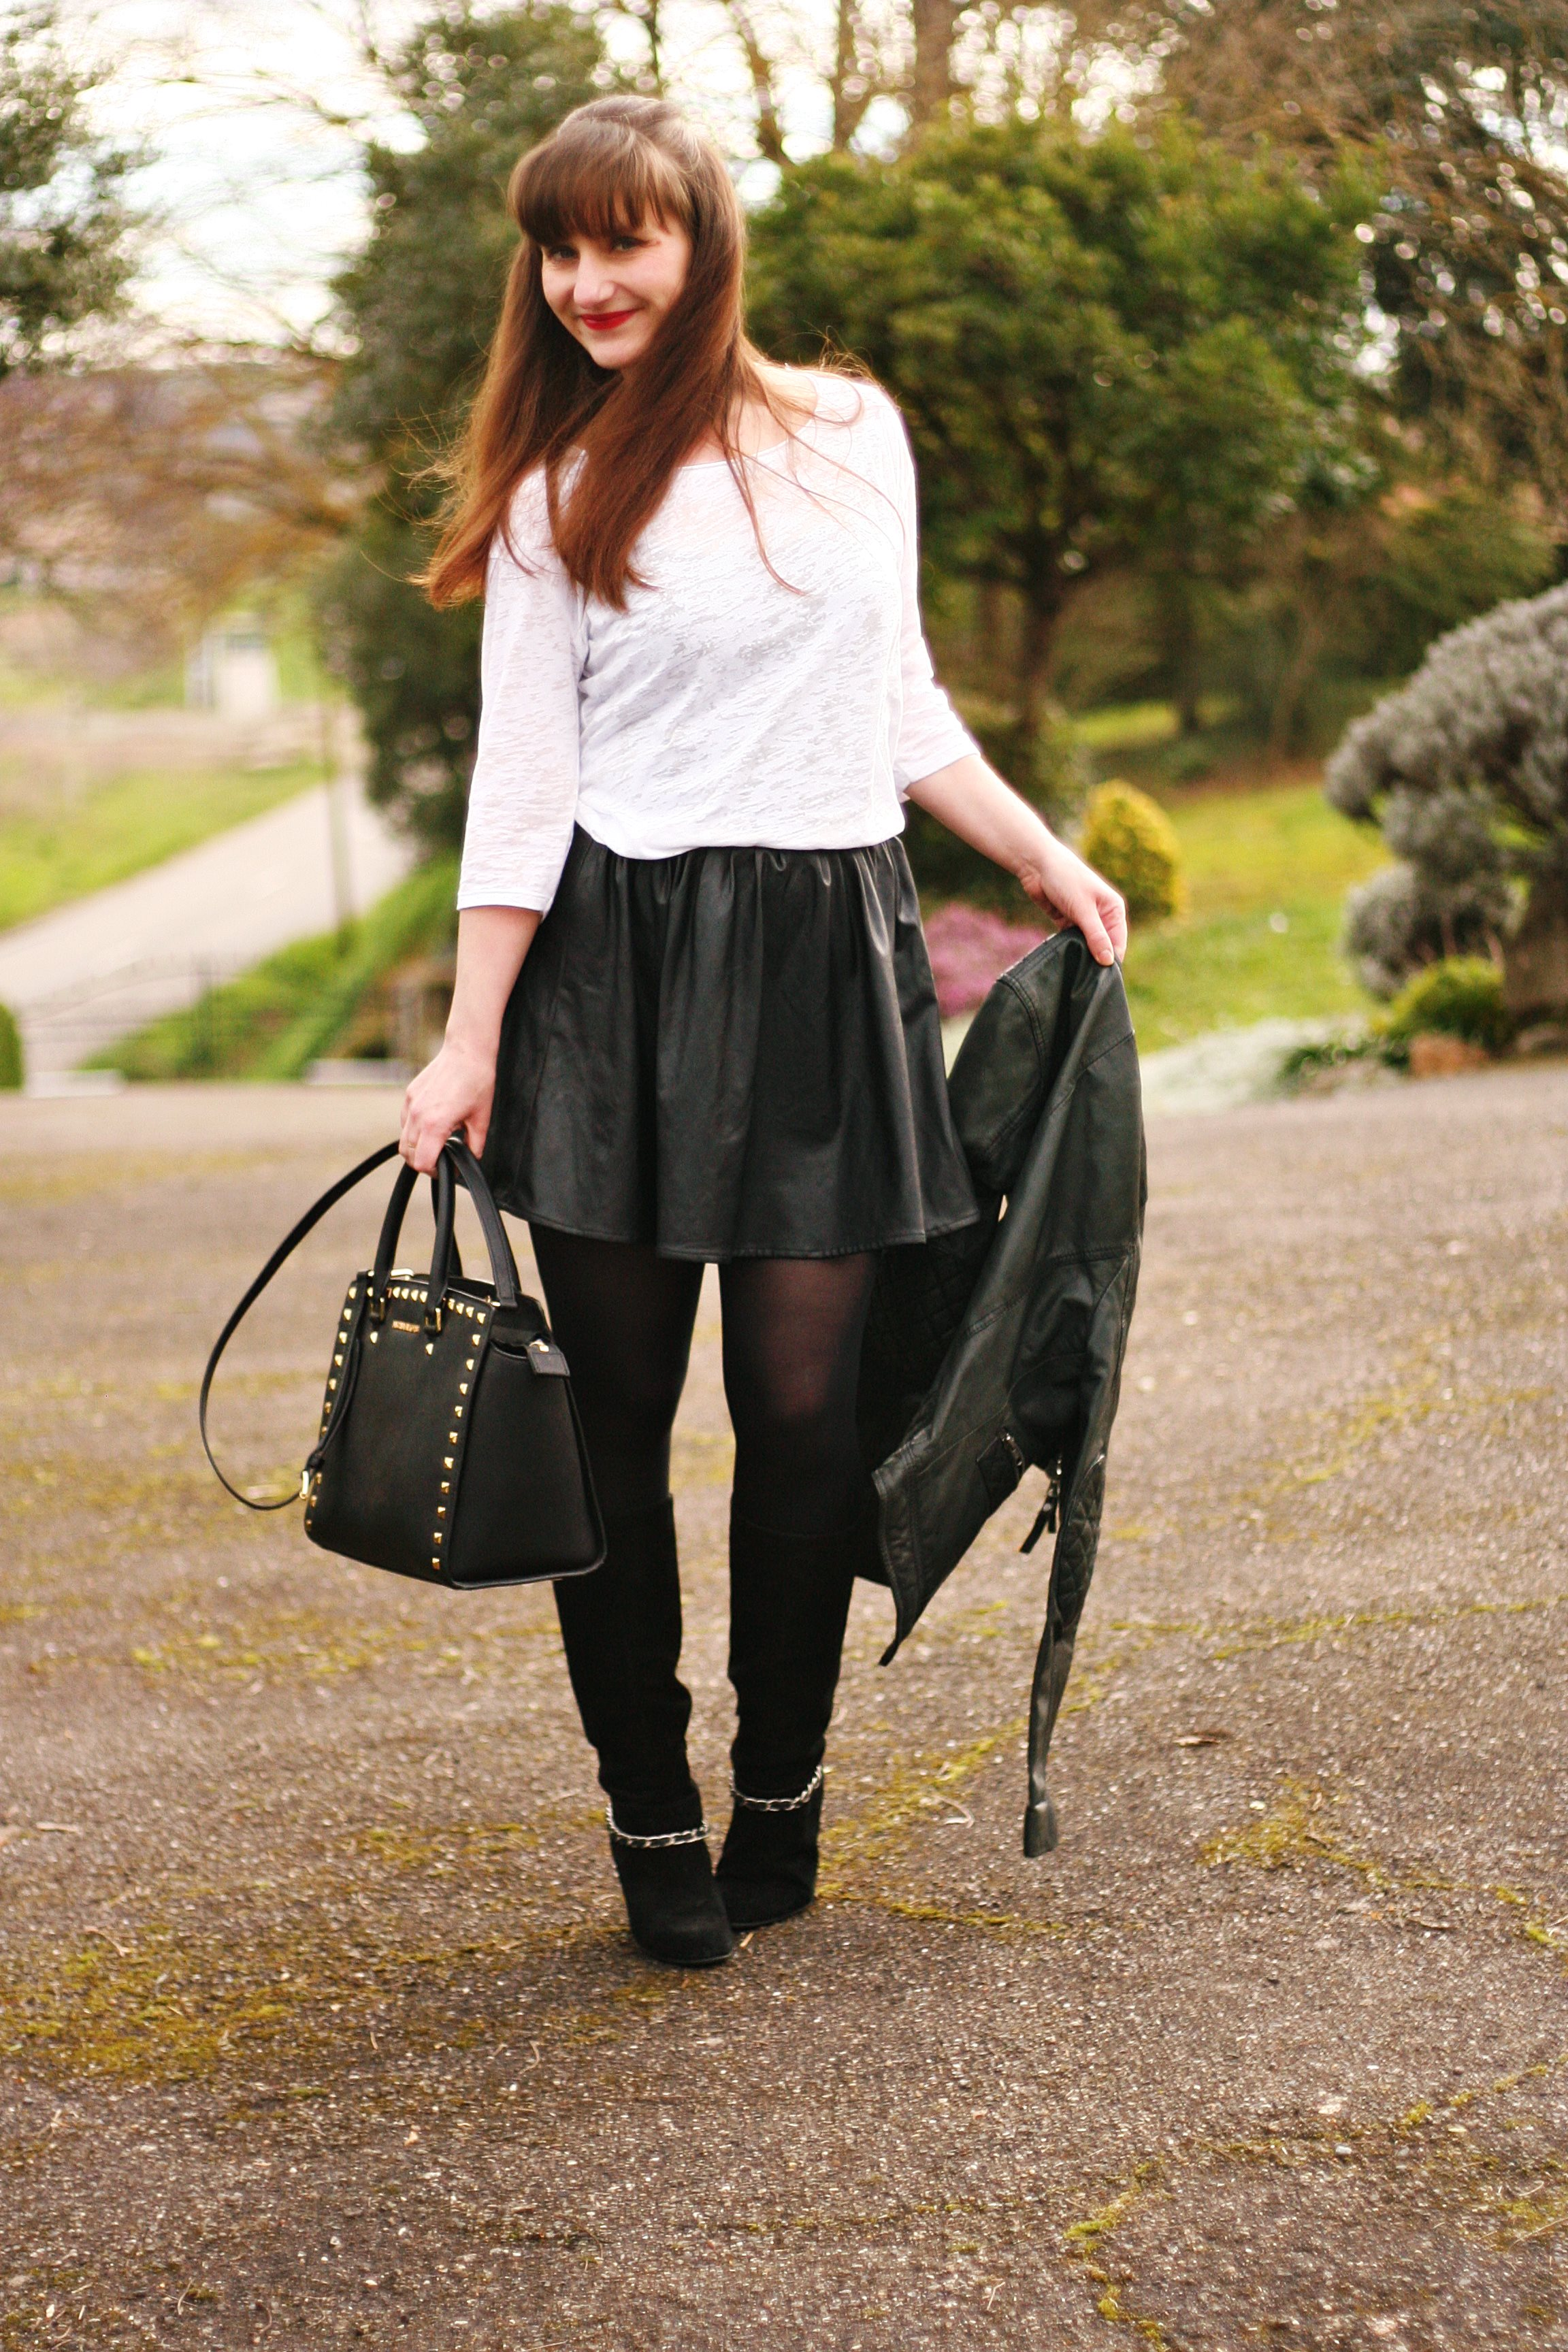 blog-mode-bottes-chaines-sac-michael-kors-americanvintage